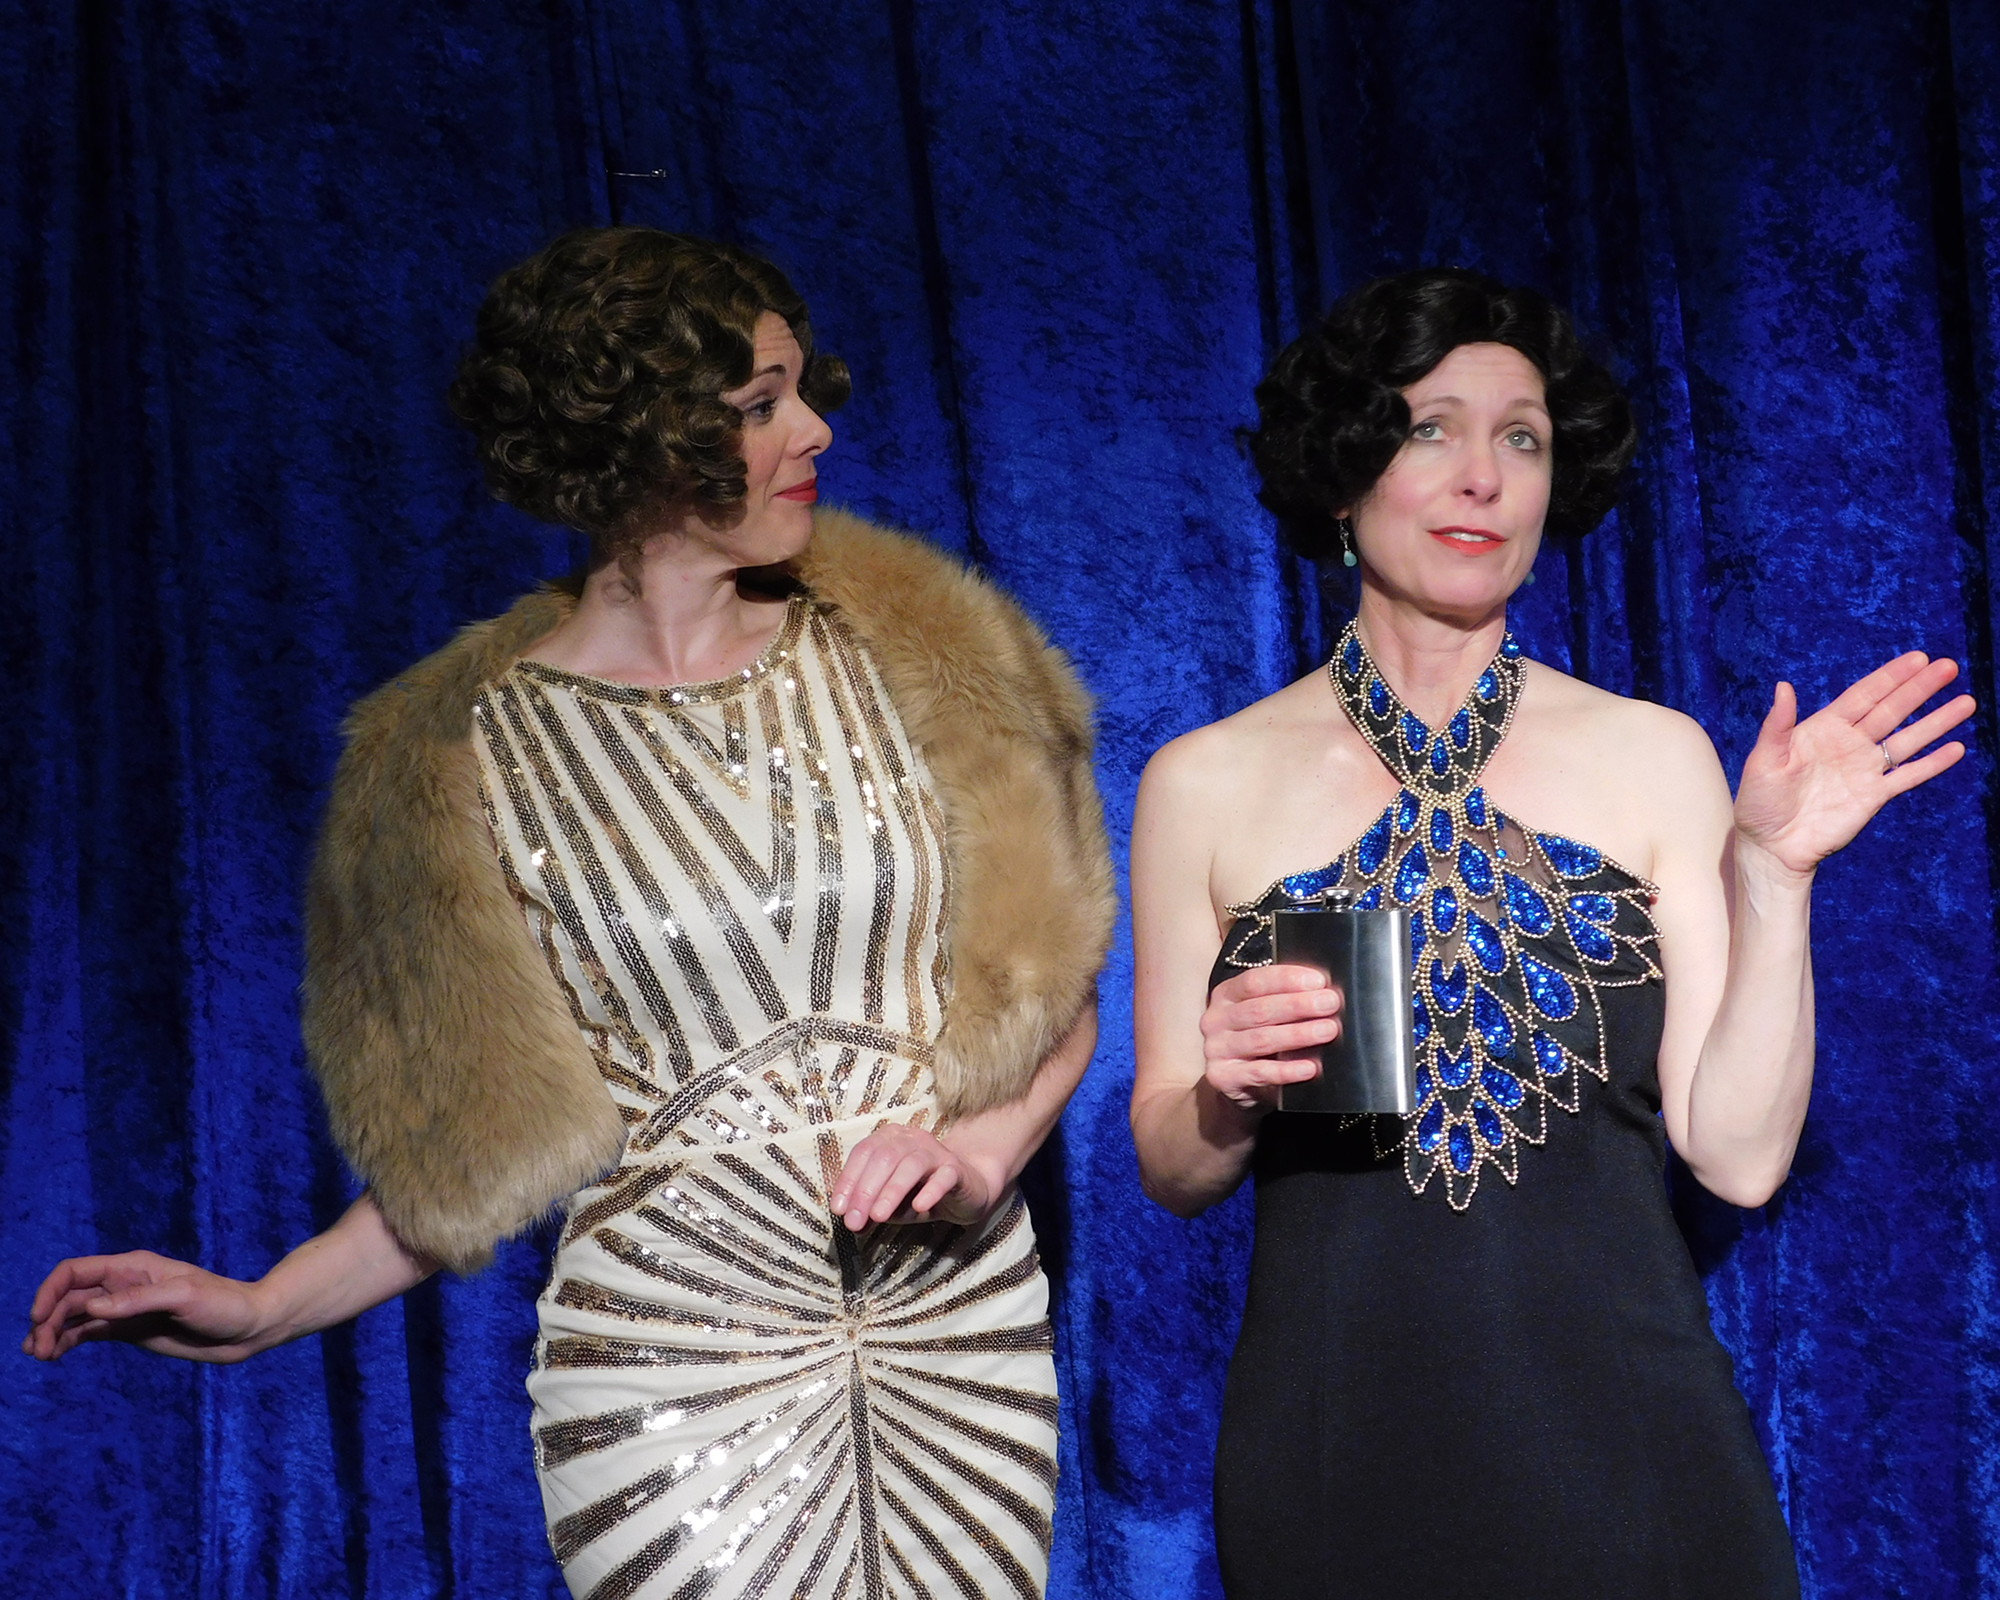 """JANET: """"Have you ever been married, Chaperone?"""" CHAPERONE: """"No, I drink for pleasure, not out of necessity.""""   Janet Van De Graaff (Minna Rogers) and the Chaperone (Amy Meyers) from Landmark Musical Theatre's upcoming production of the Tony Award-winning musical   The Drowsy Chaperone."""